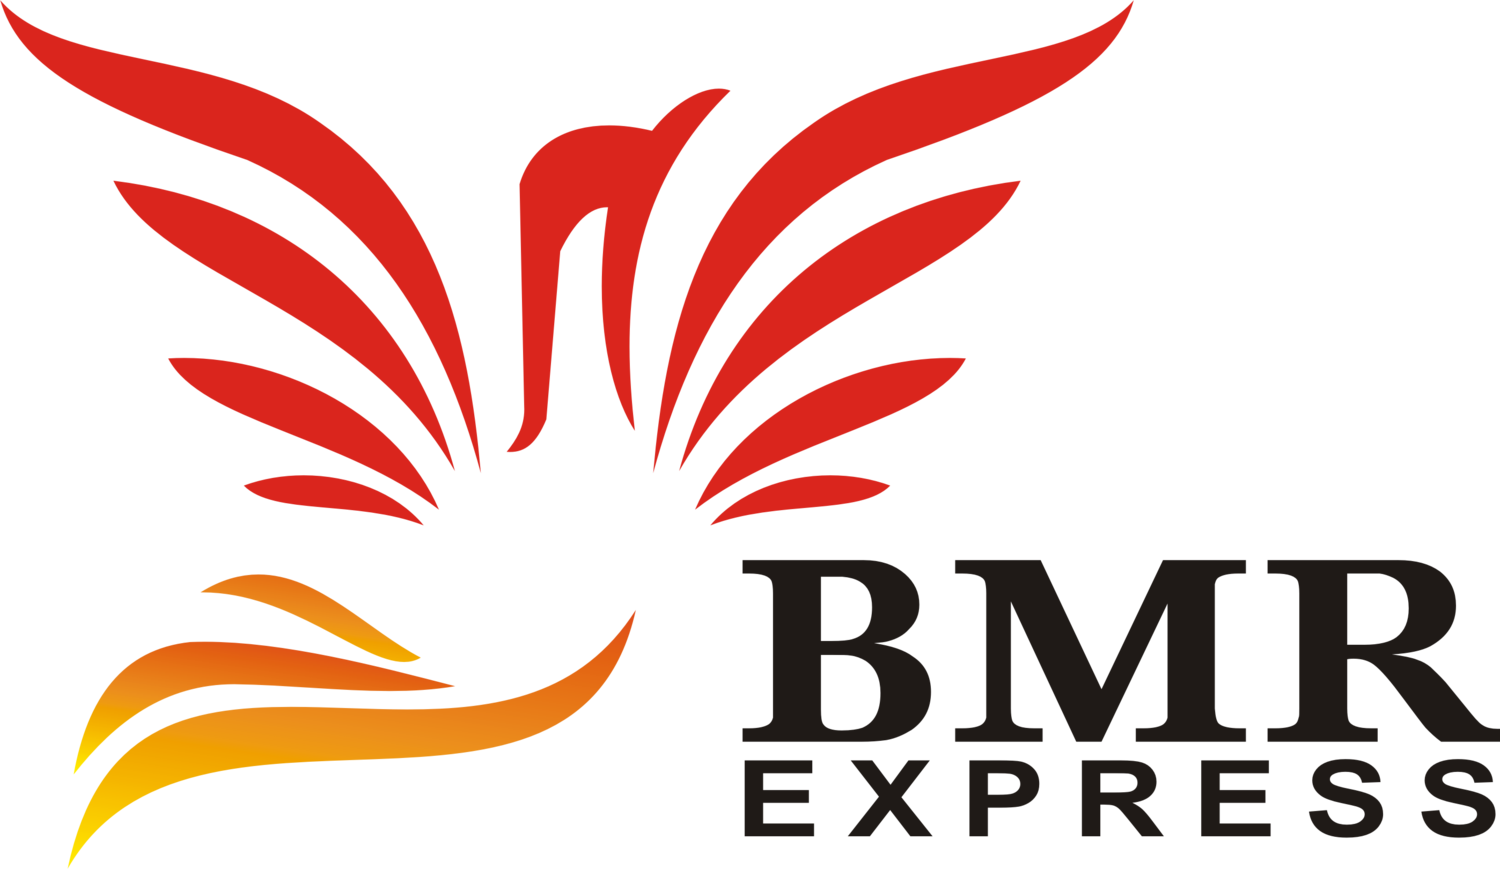 BMR Express - Aviation Is Our Passion